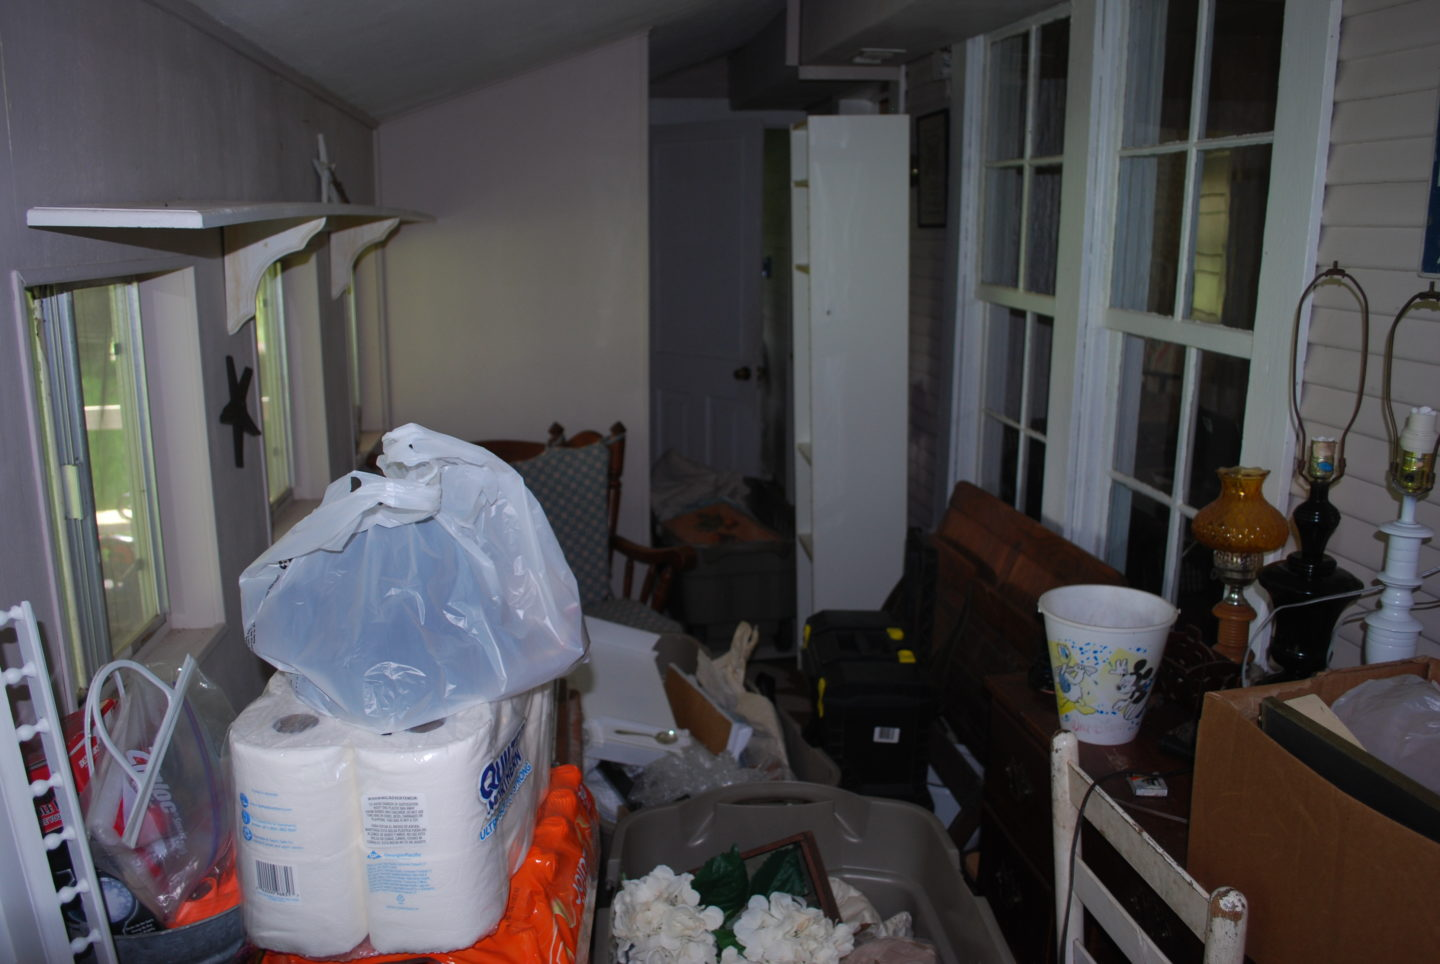 Mudroom before cleanout